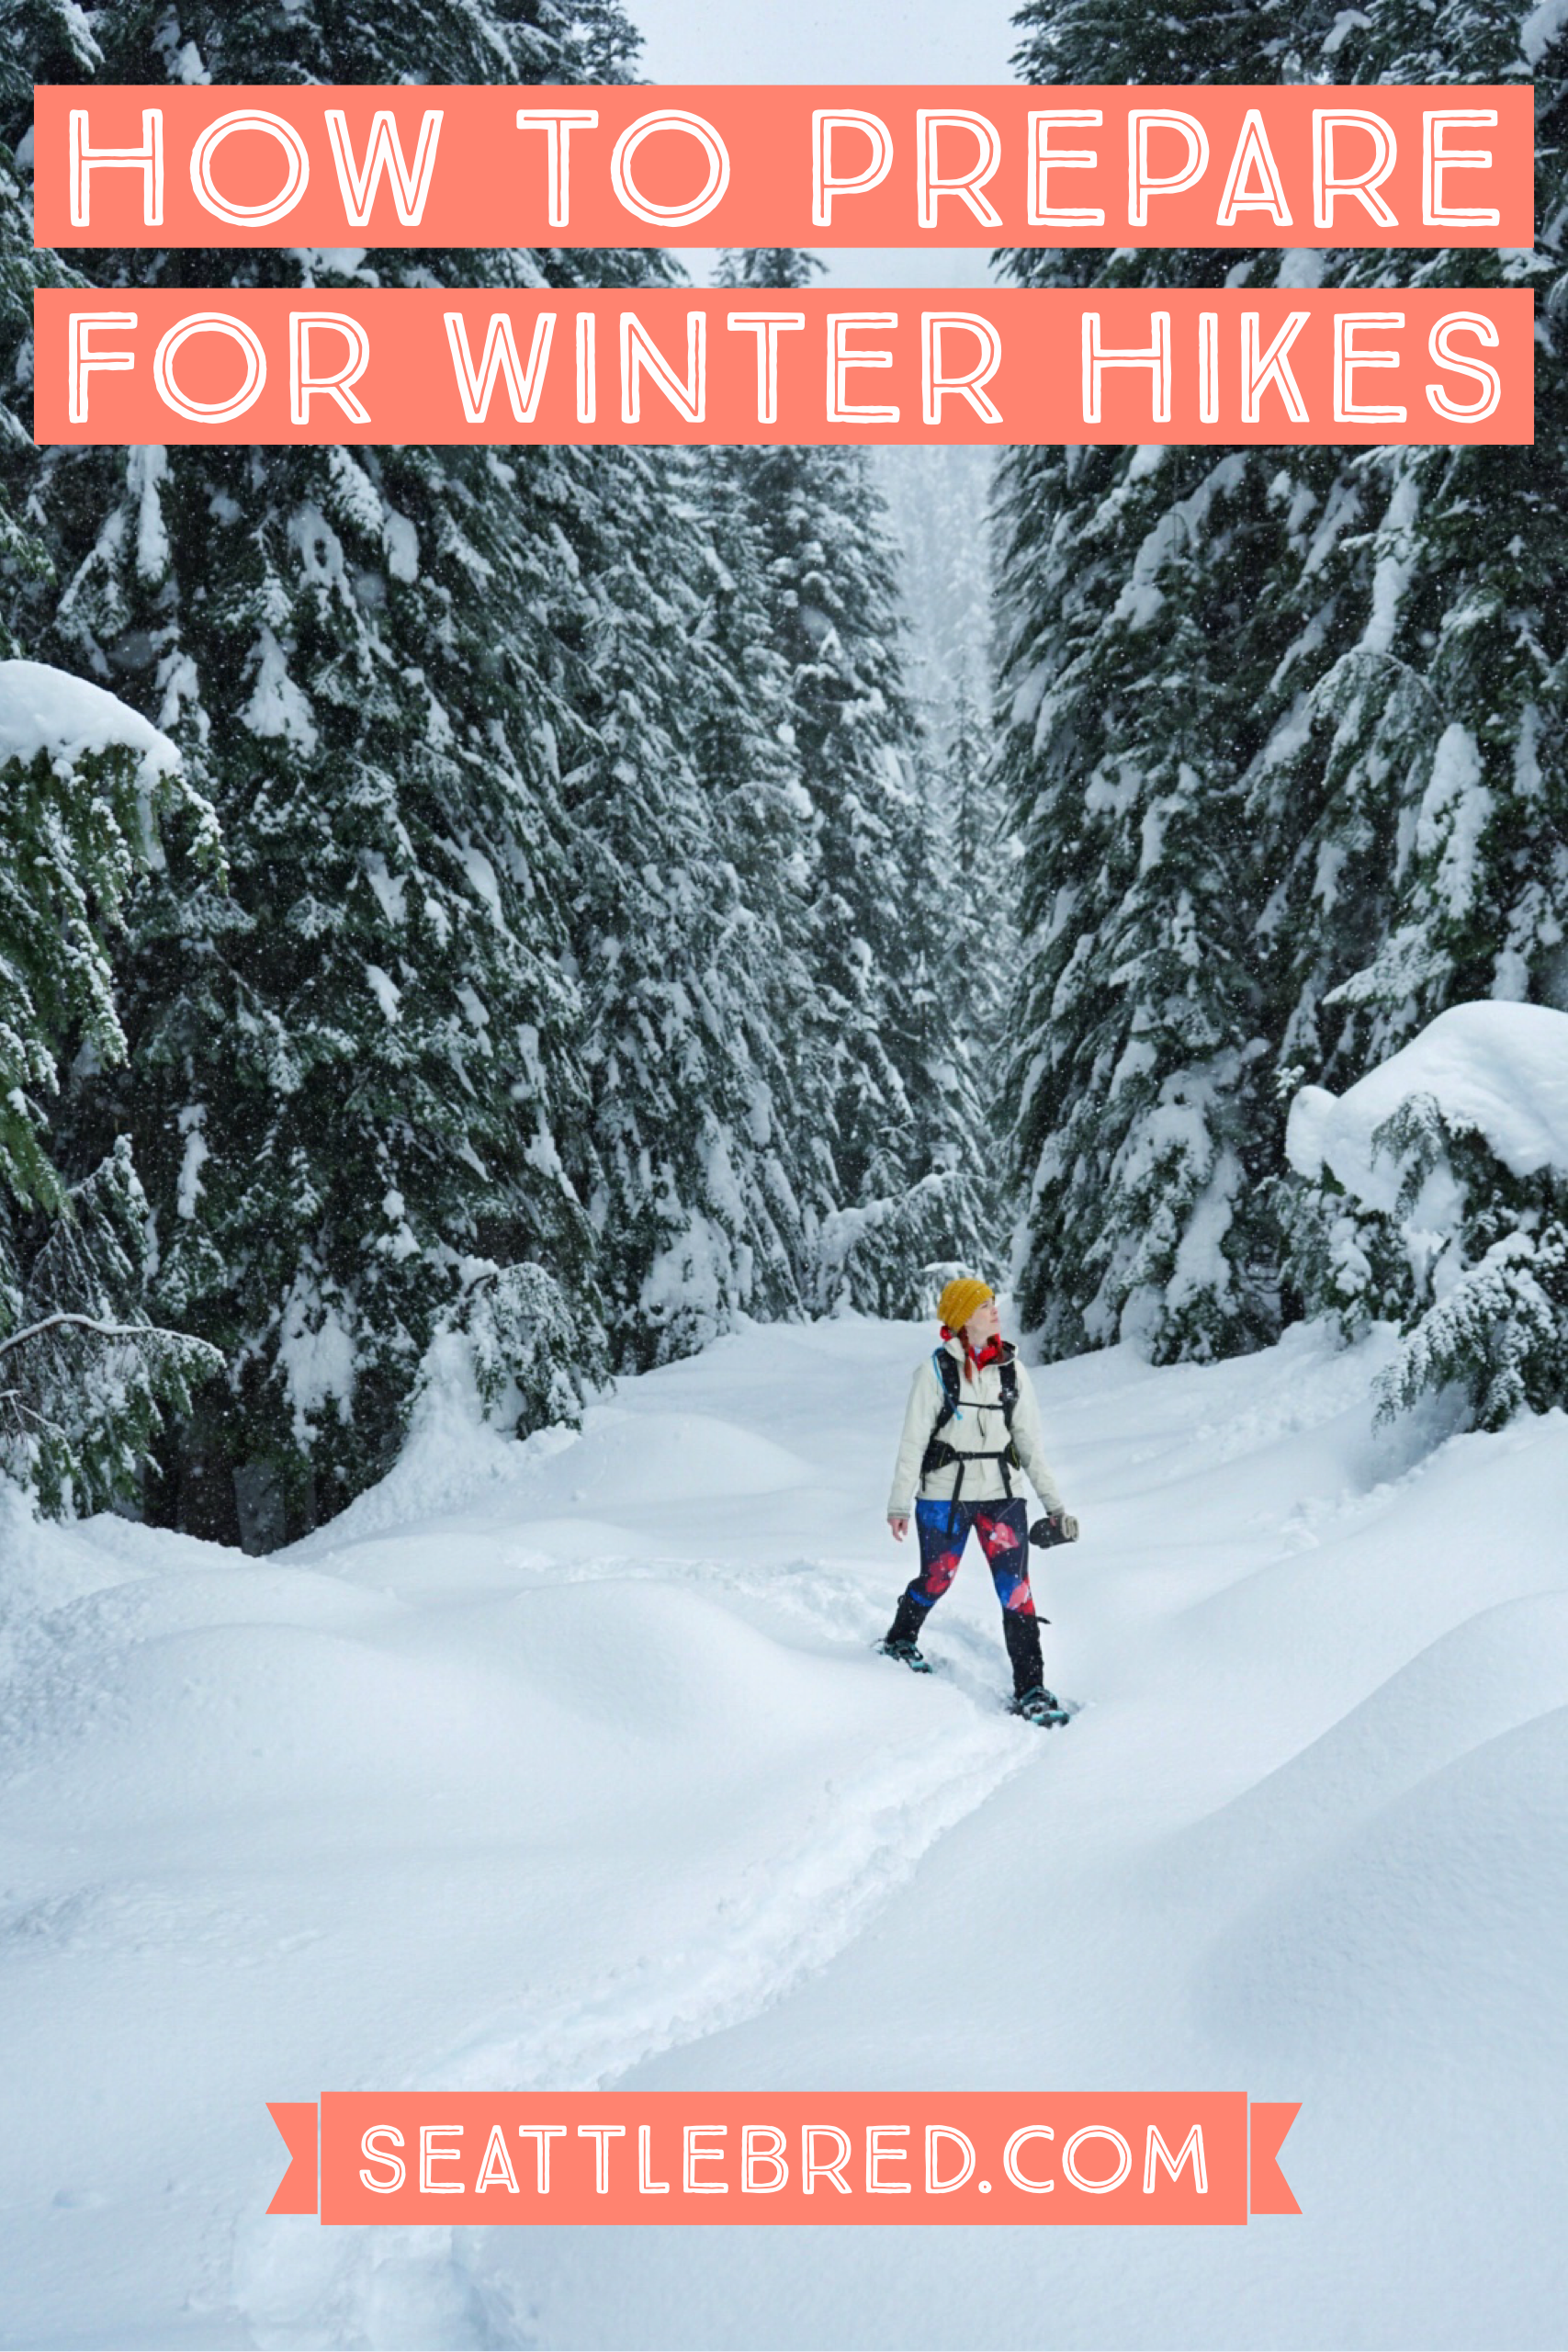 How-to-prepare-for-winter-hikes-5.PNG